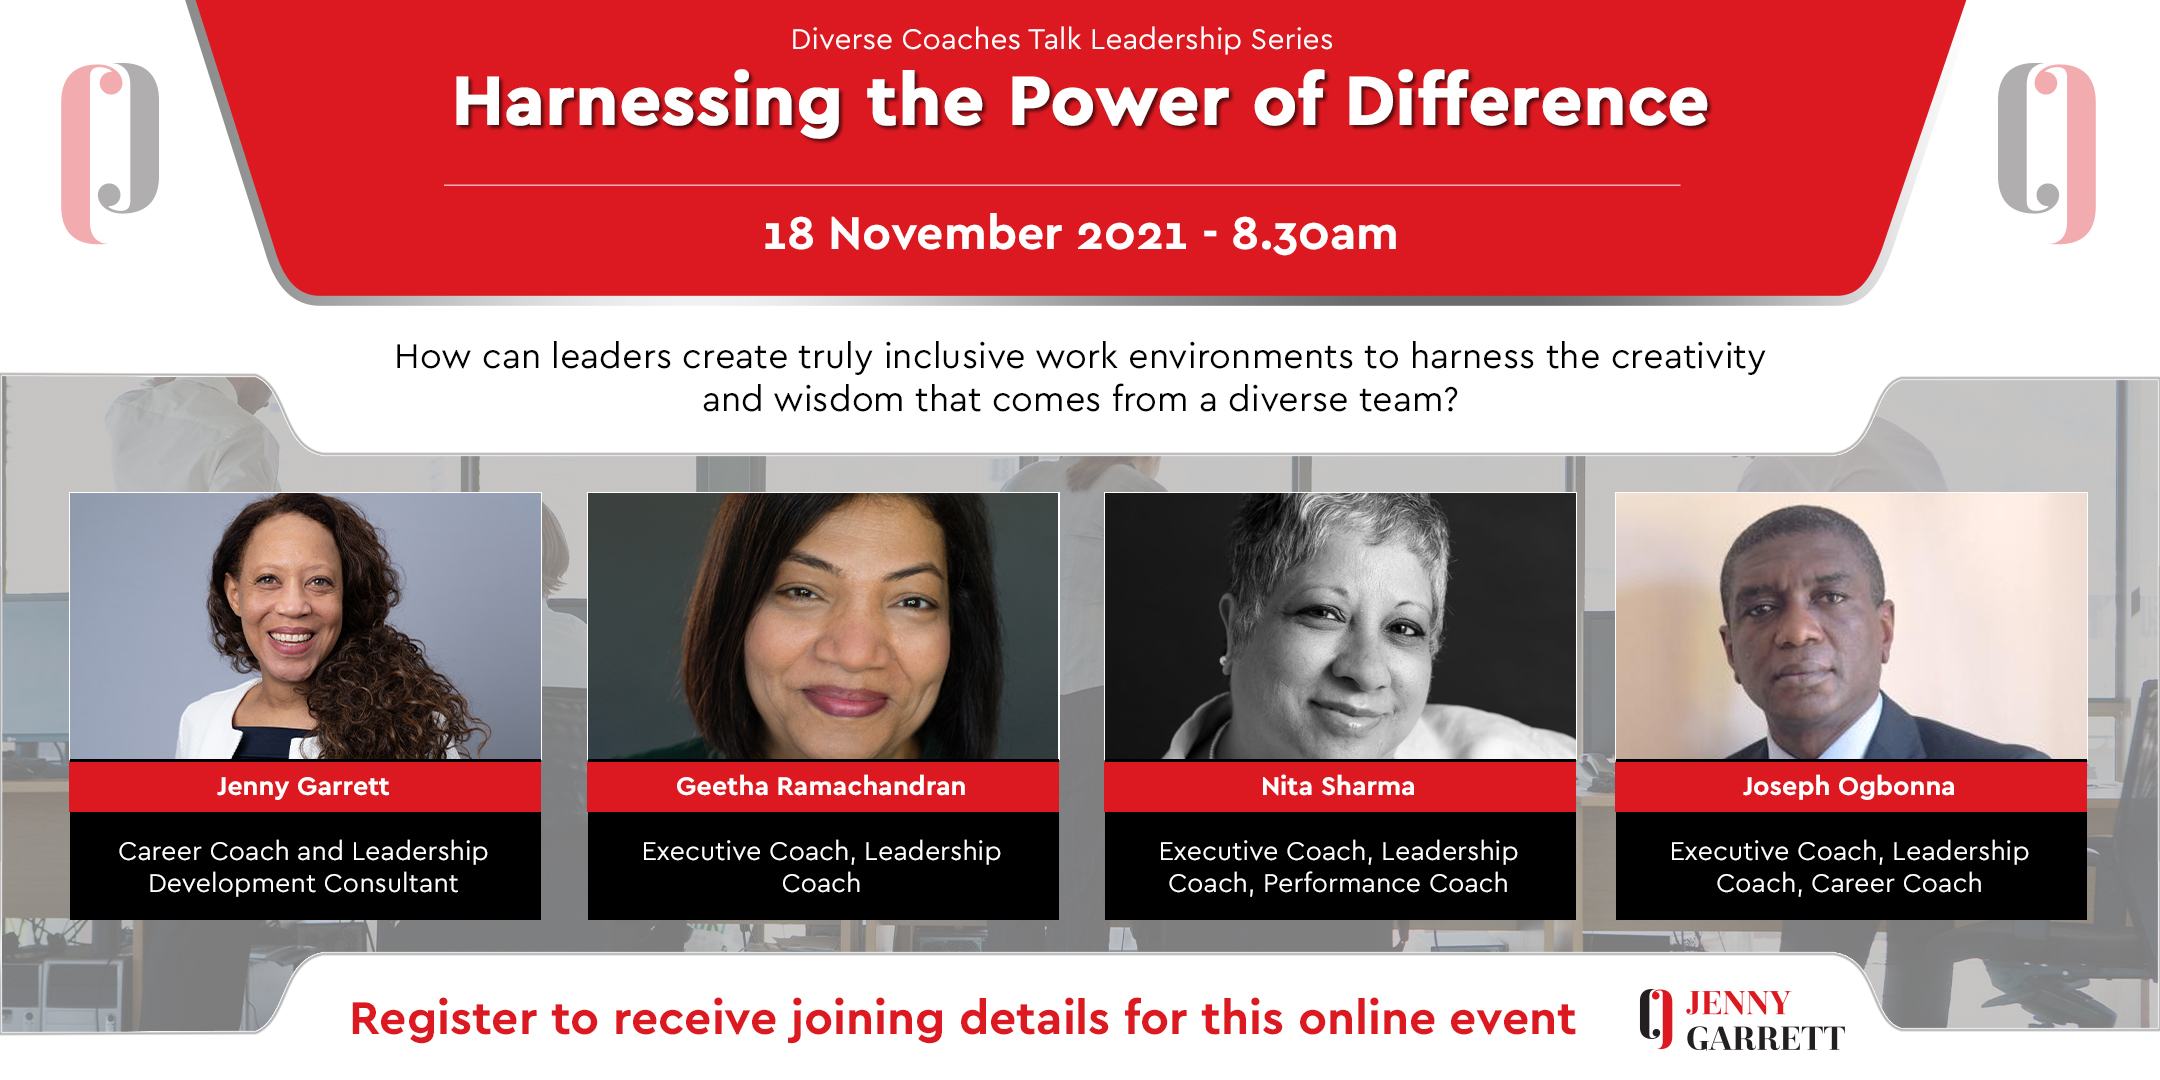 Harnessing the Power of Difference